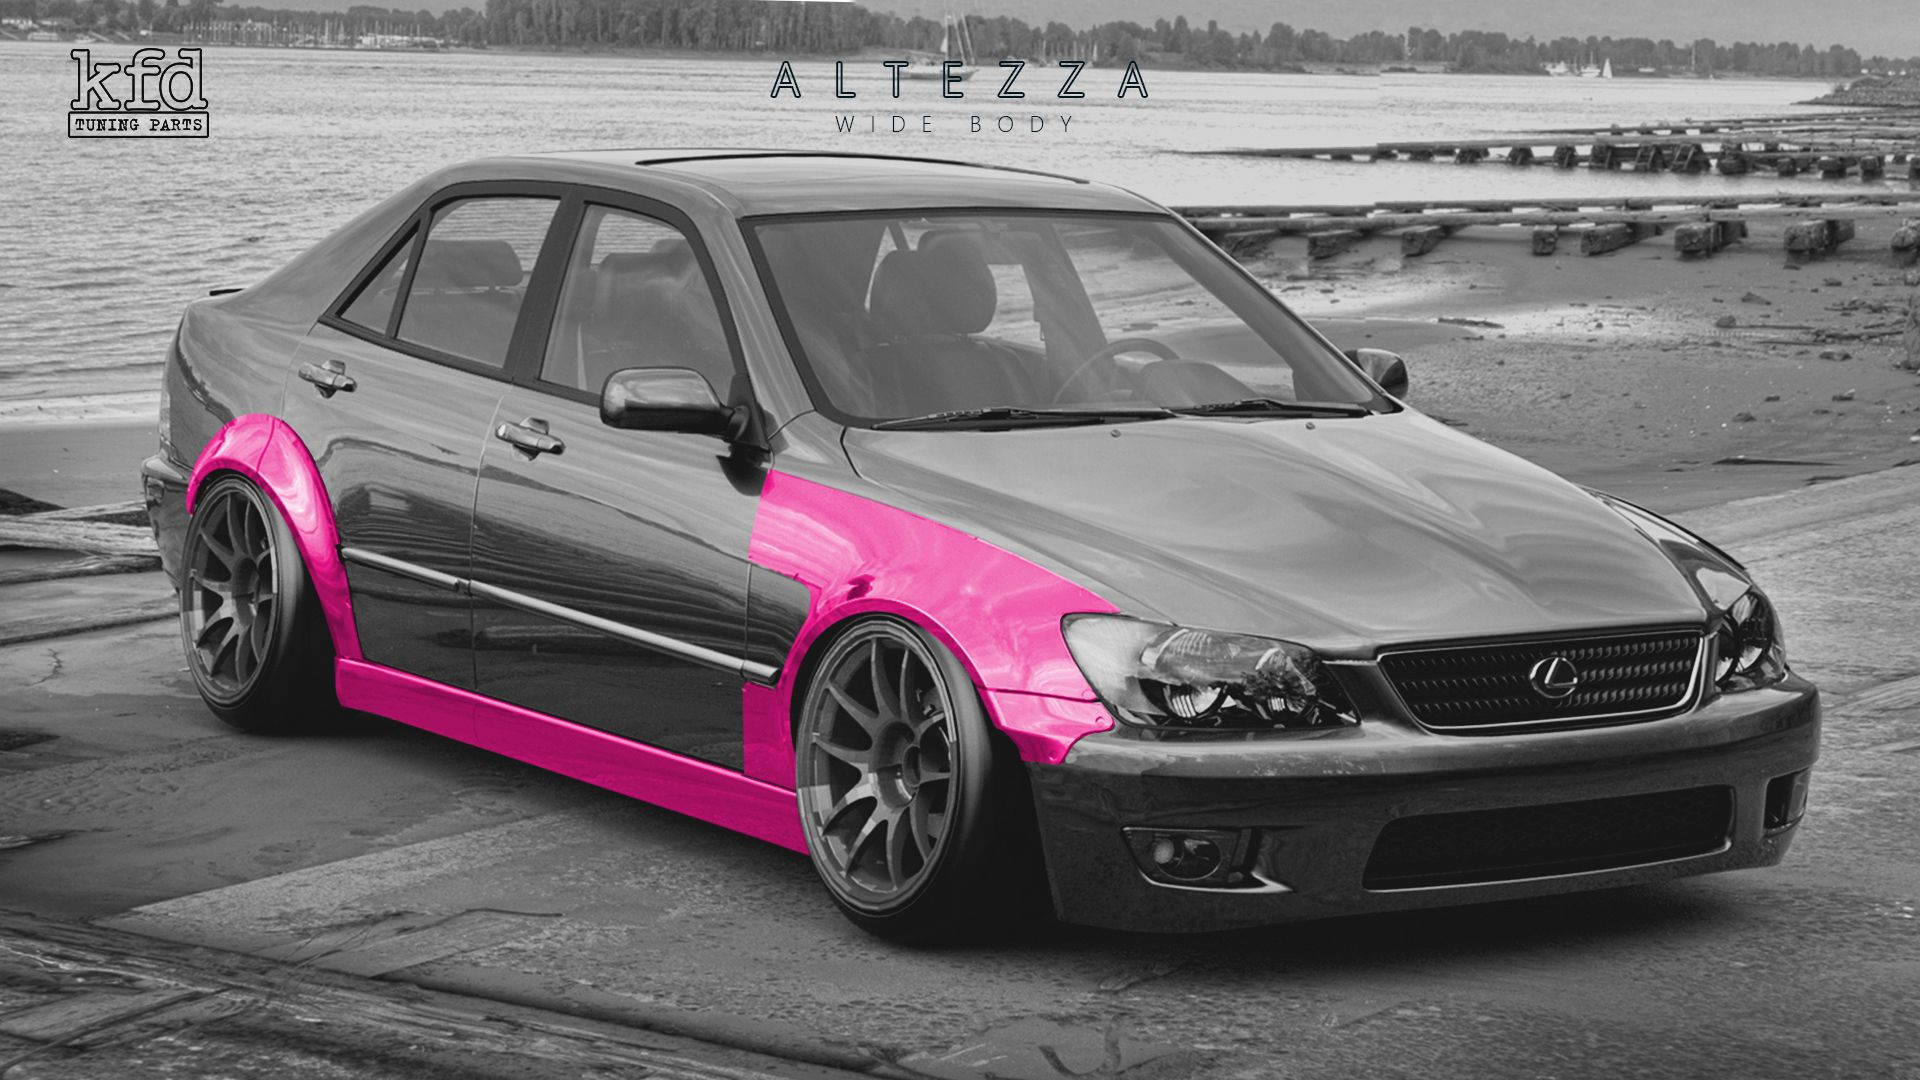 Wide Body Kit For Toyota Altezza Lexus Is200 Is300 Wide Body Wide Body Kits Body Kit